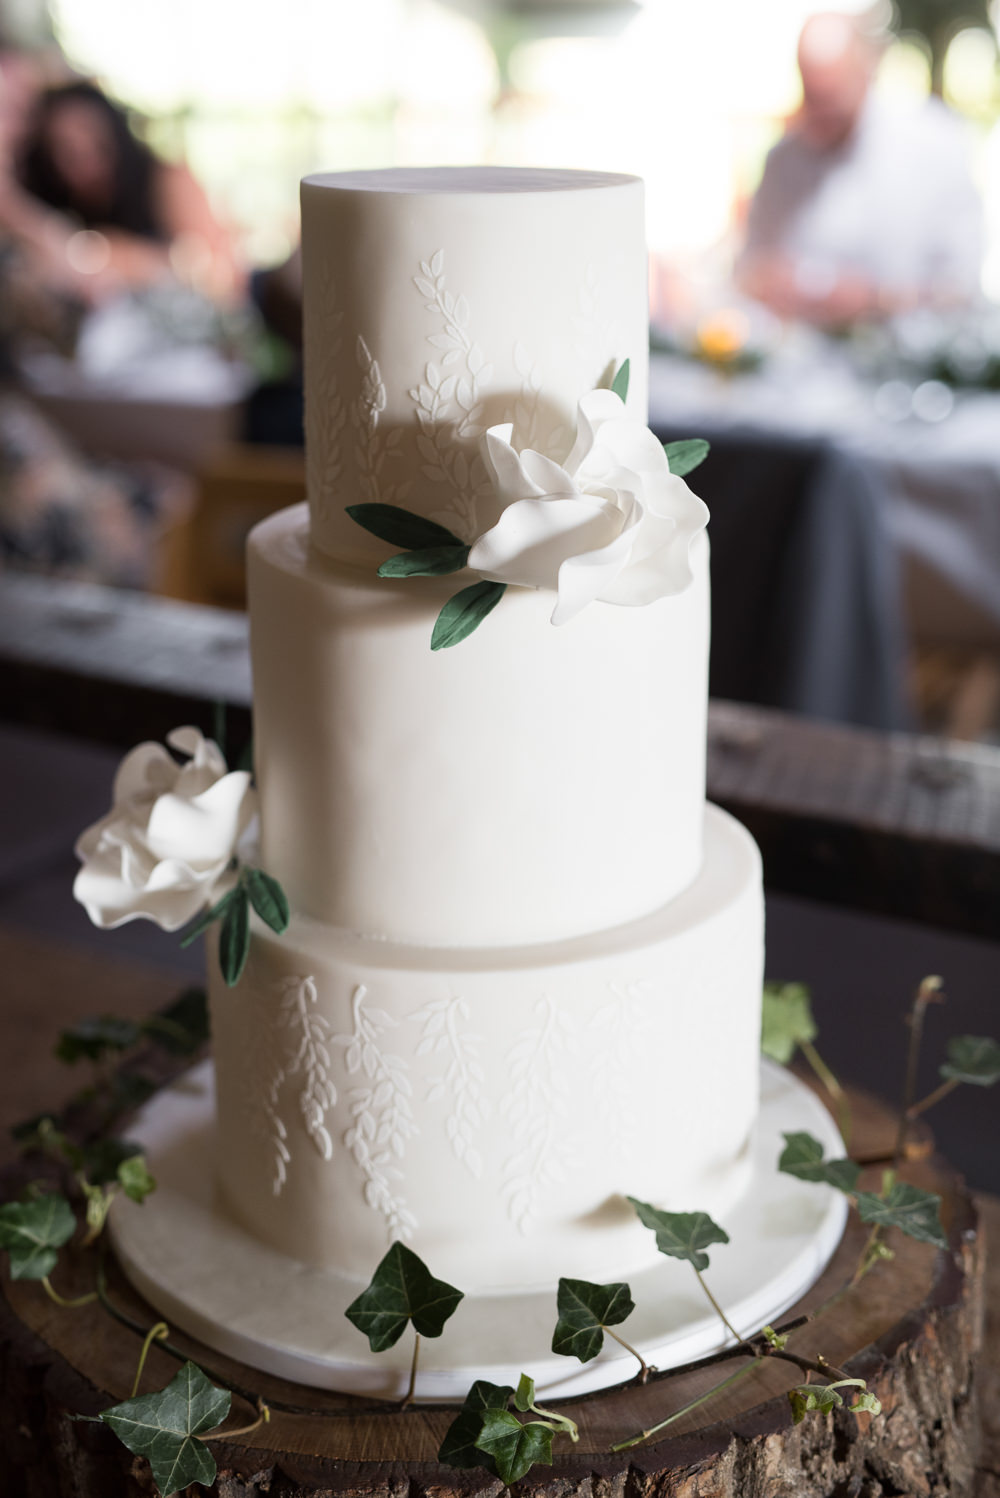 Cake Traditional Sugar Flowers White Tiered Wood Slice Tree Ivy Elegant Chic Modern Wedding Kayleigh Pope Photography